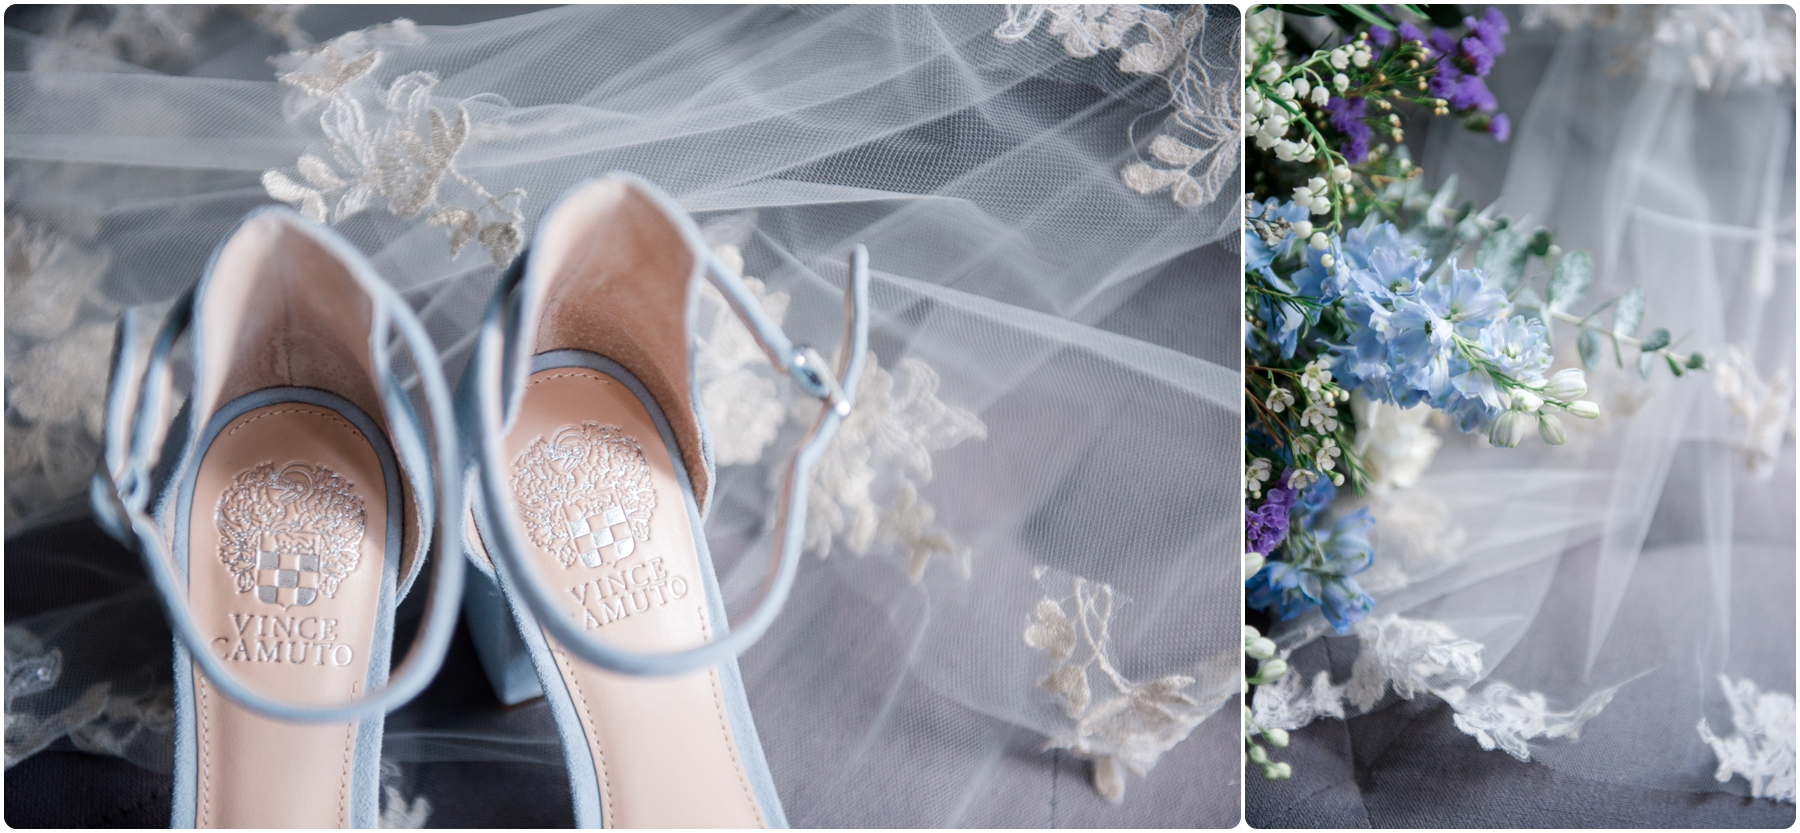 wedding details like viel and shoes